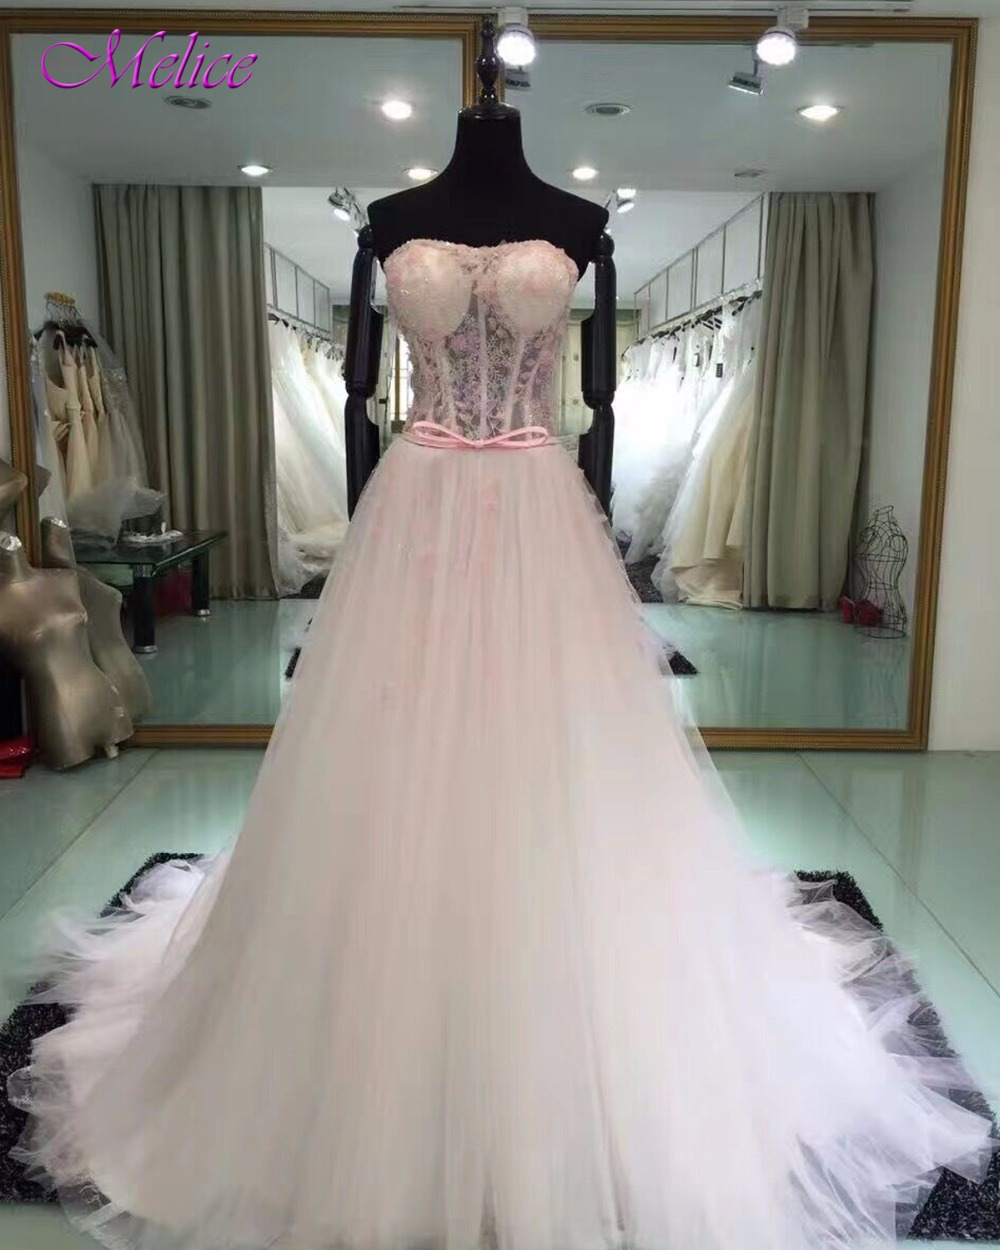 Fmogl Charming Straoless Lace Up A-Line   Prom     Dress   2019 Glamorous Tulle Court Train Formal Party Gown Robe De Soiree Plus Size